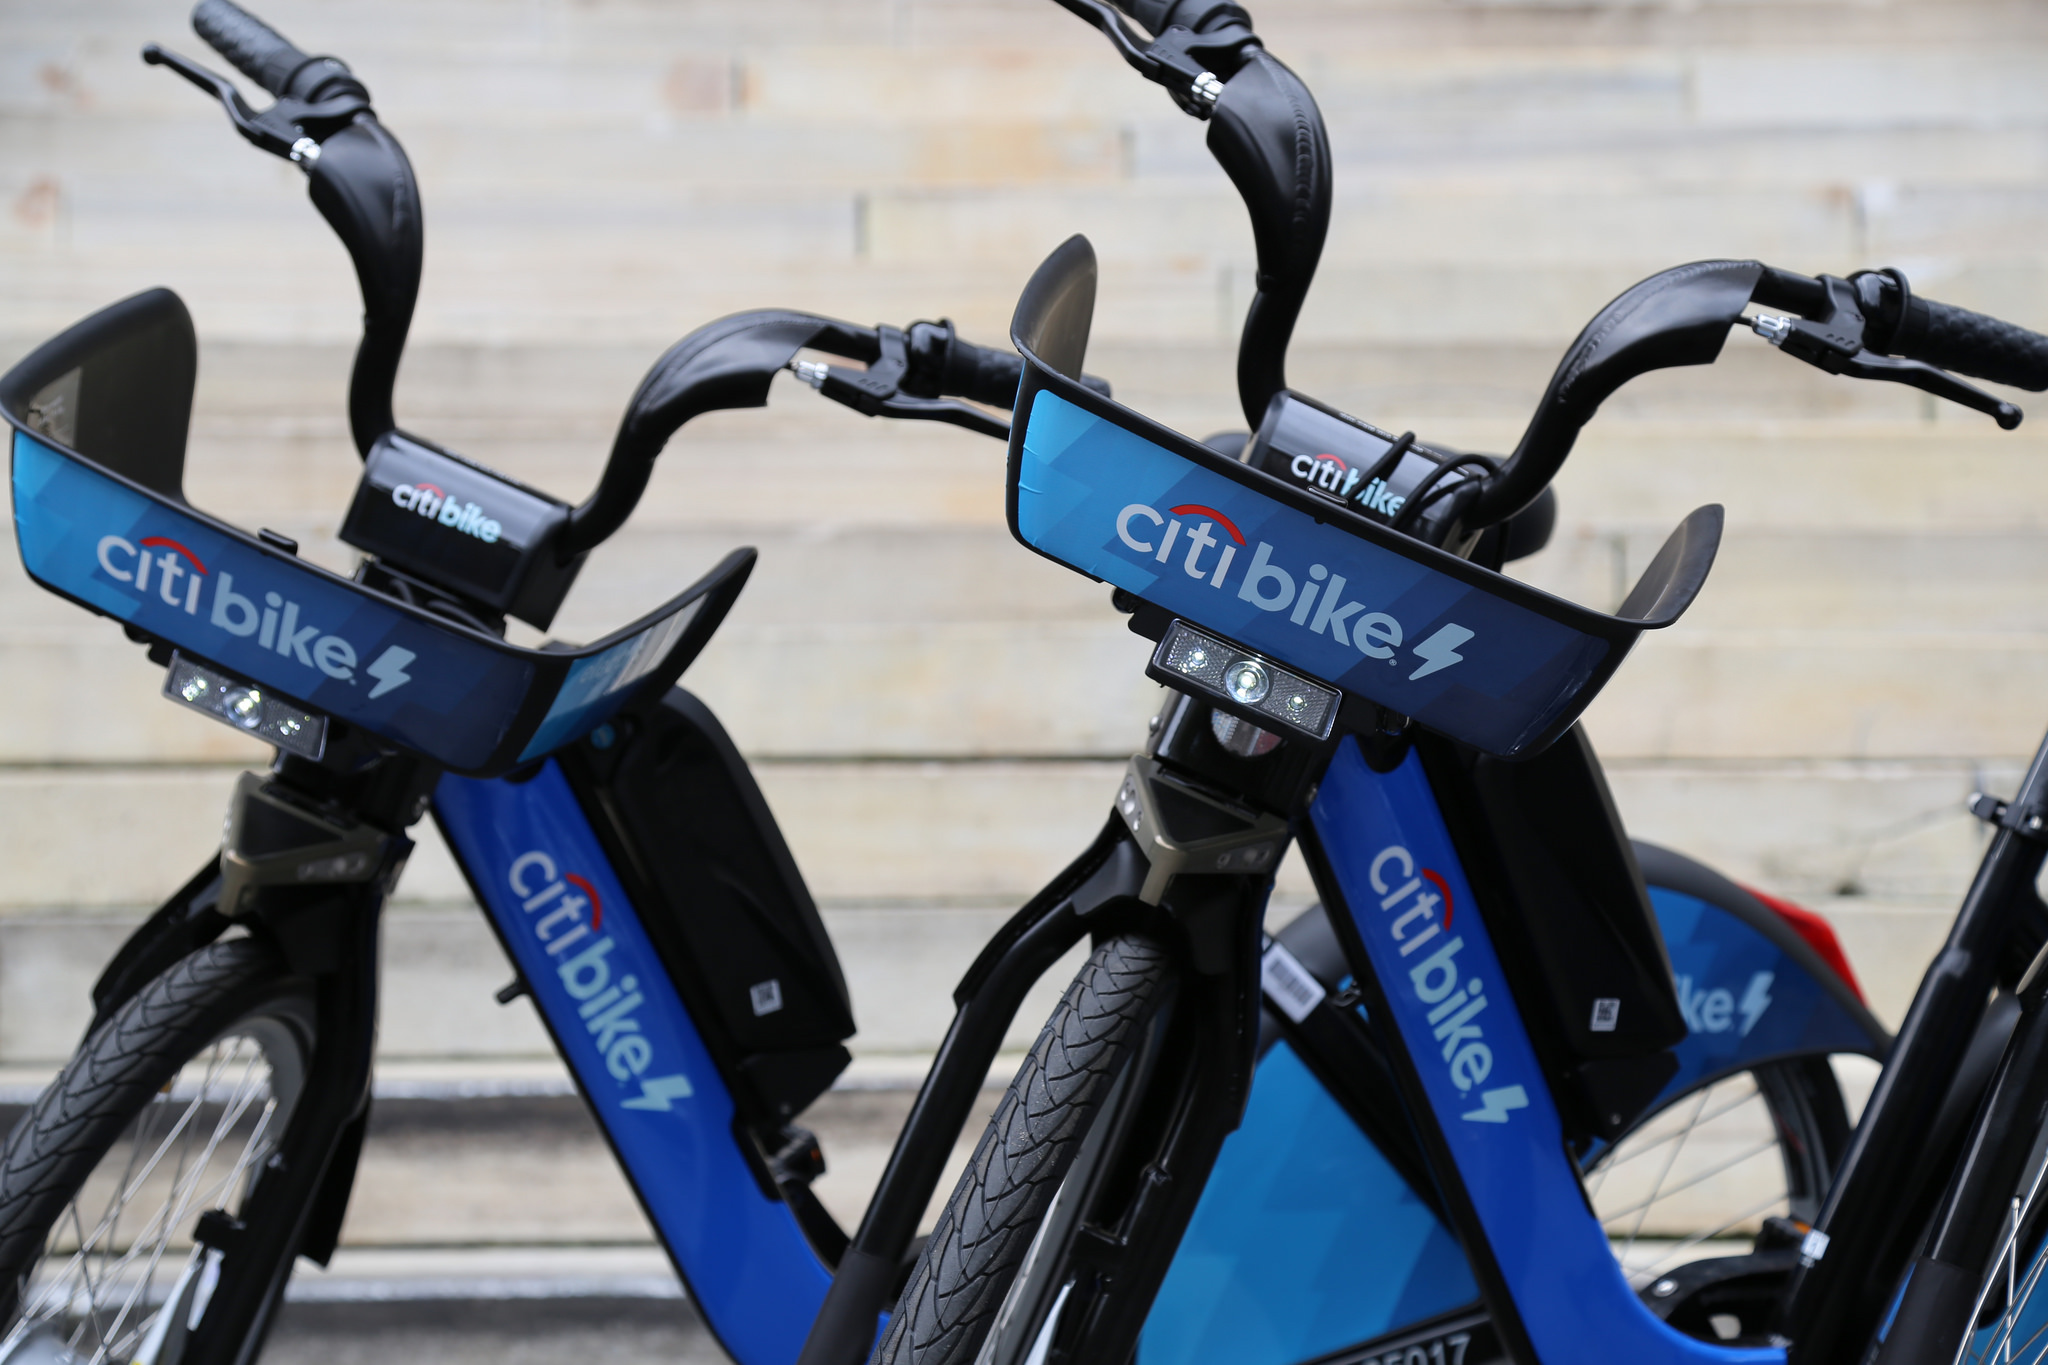 Find one of those elusive electric Citi Bikes with this ... Citibike Maps on nyc school district map, bronx zip code map, proof of success map, hubway map, nyc bus map, nyc train map,